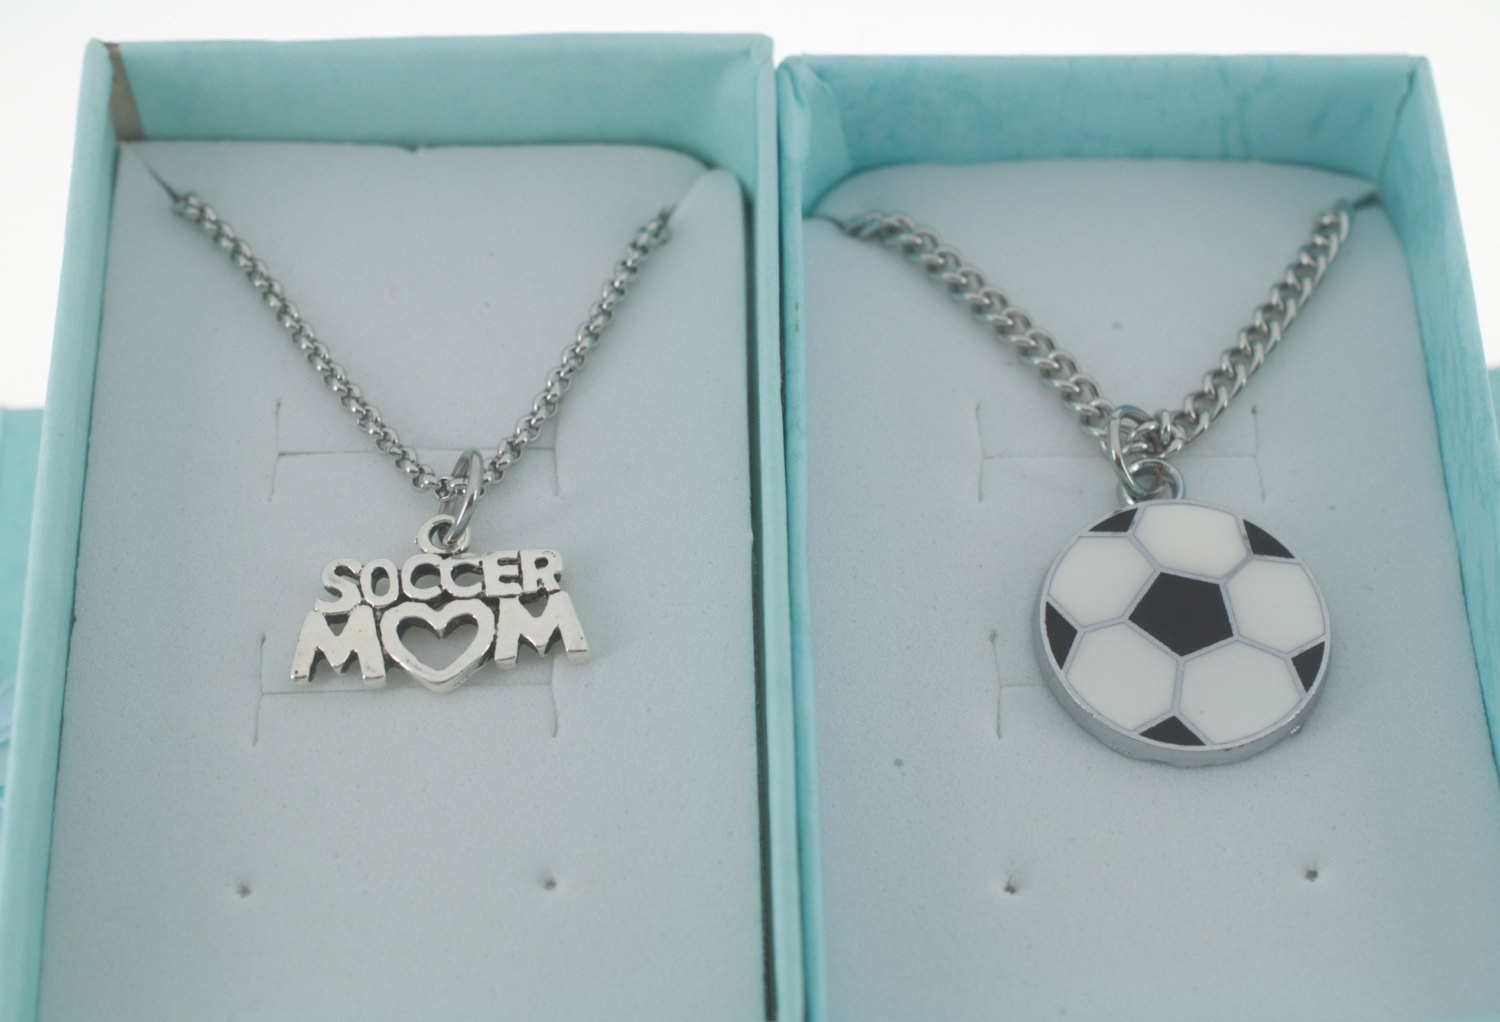 Amazon.com: Mother Son Matching Jewelry - Soccer mom necklace and ...